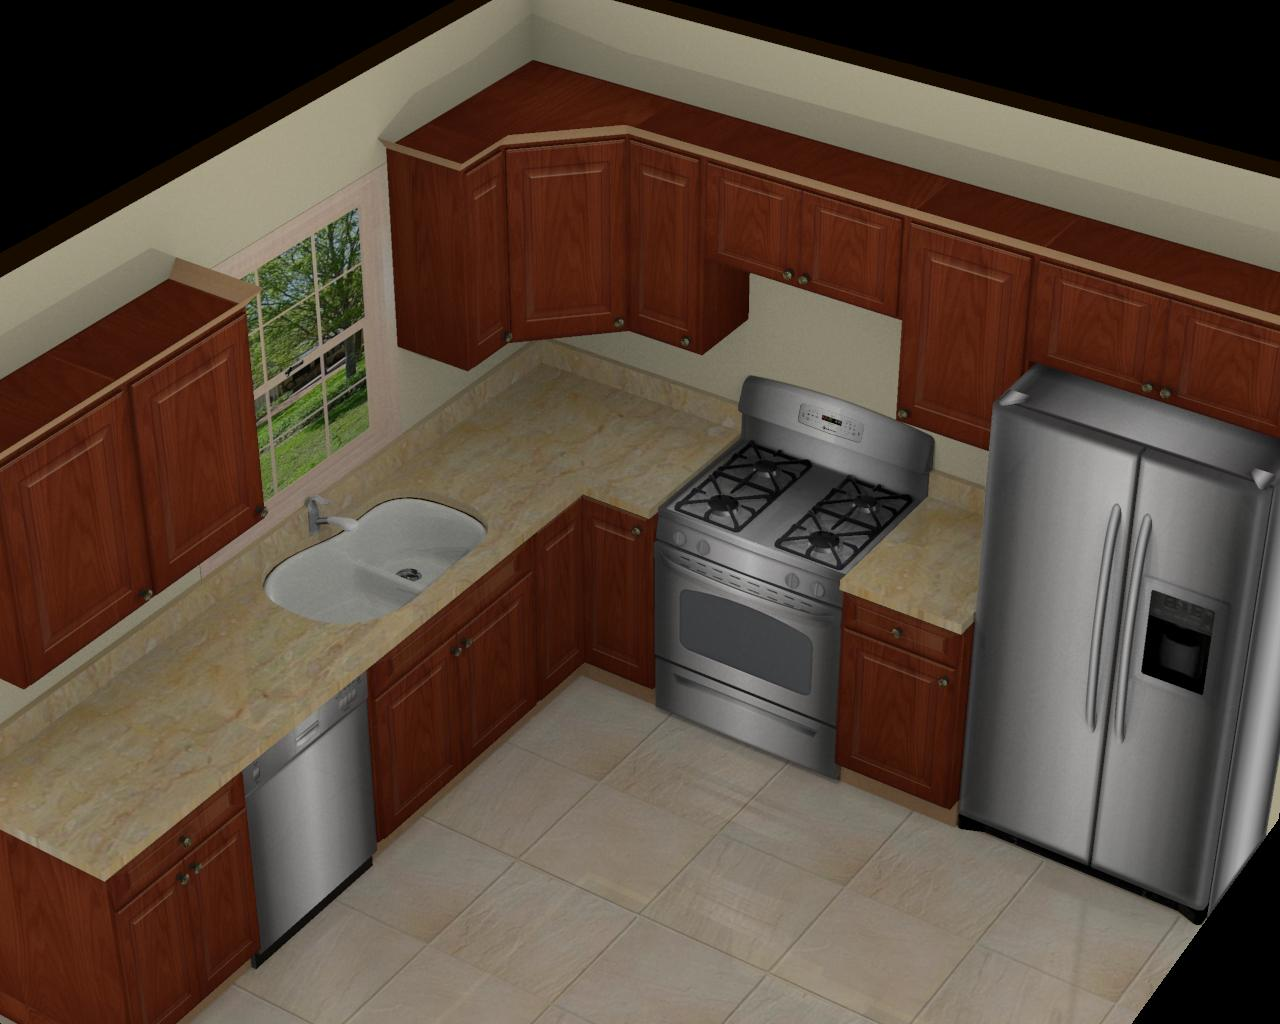 Foundation dezin decor 3d kitchen model design for 9 x 10 kitchen ideas